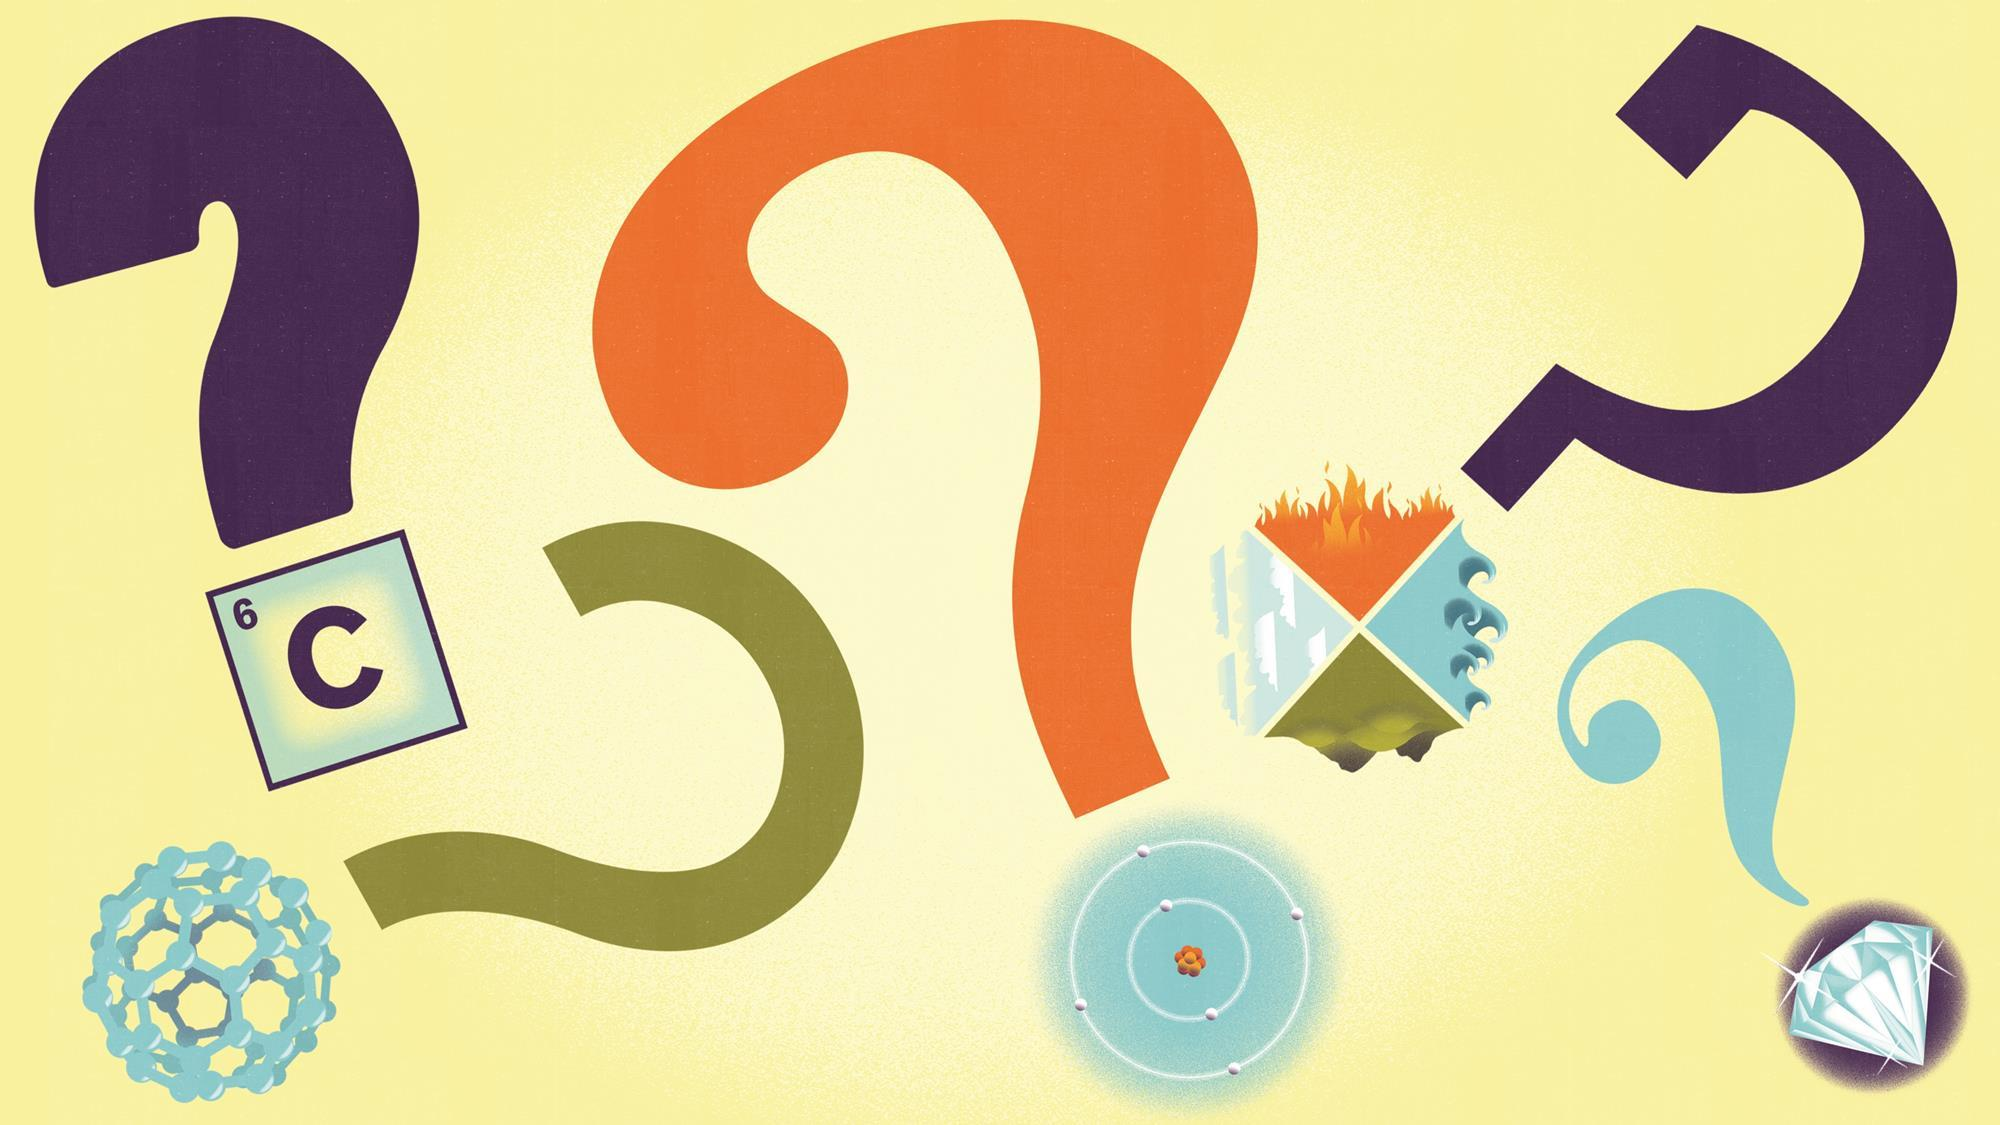 What is an element? | Feature | Chemistry World